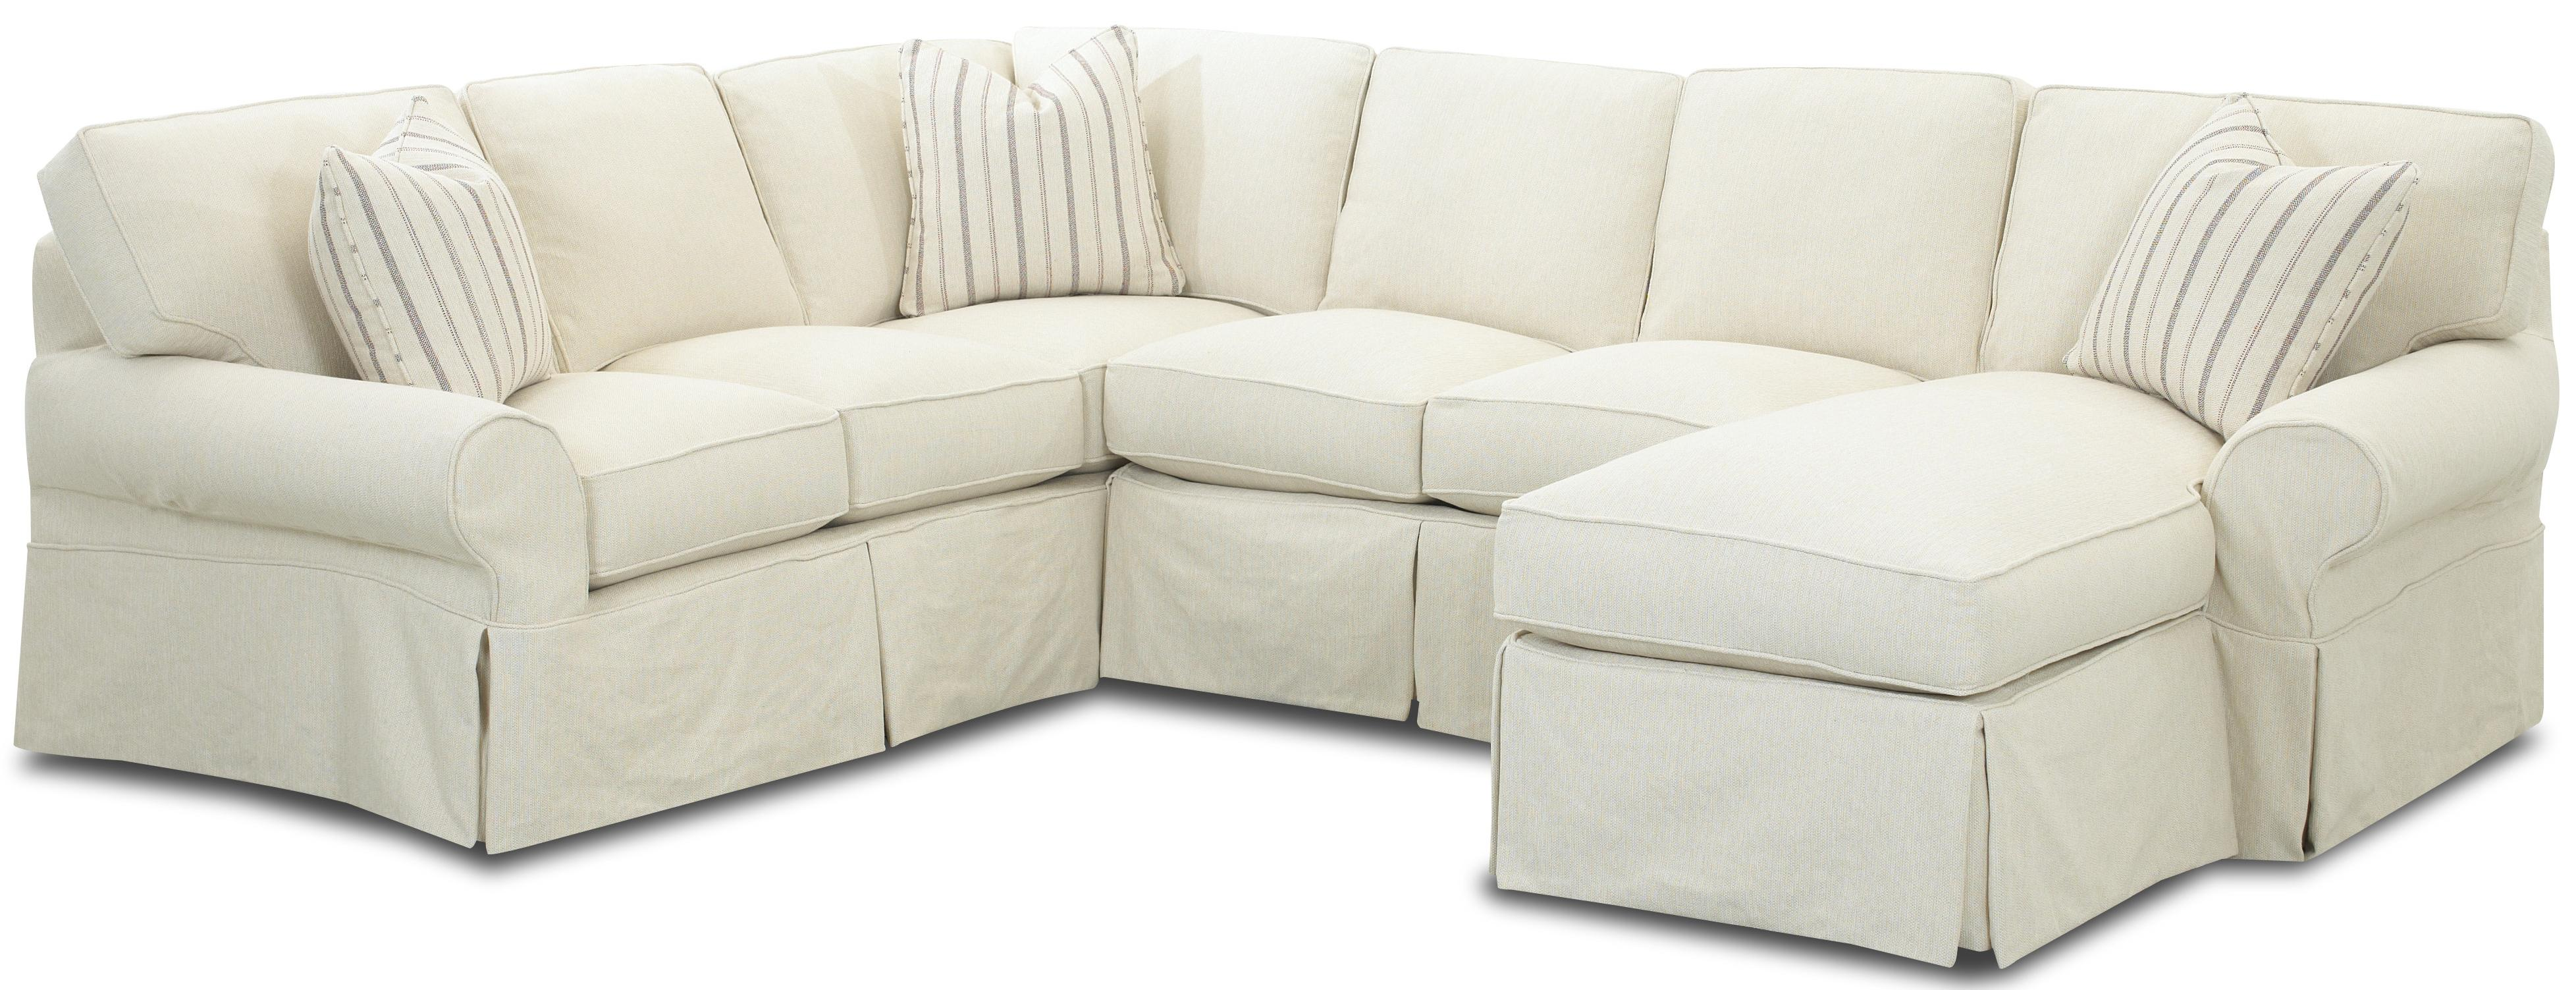 Slipcovered Sectional Sofa with Right Chaise by Klaussner